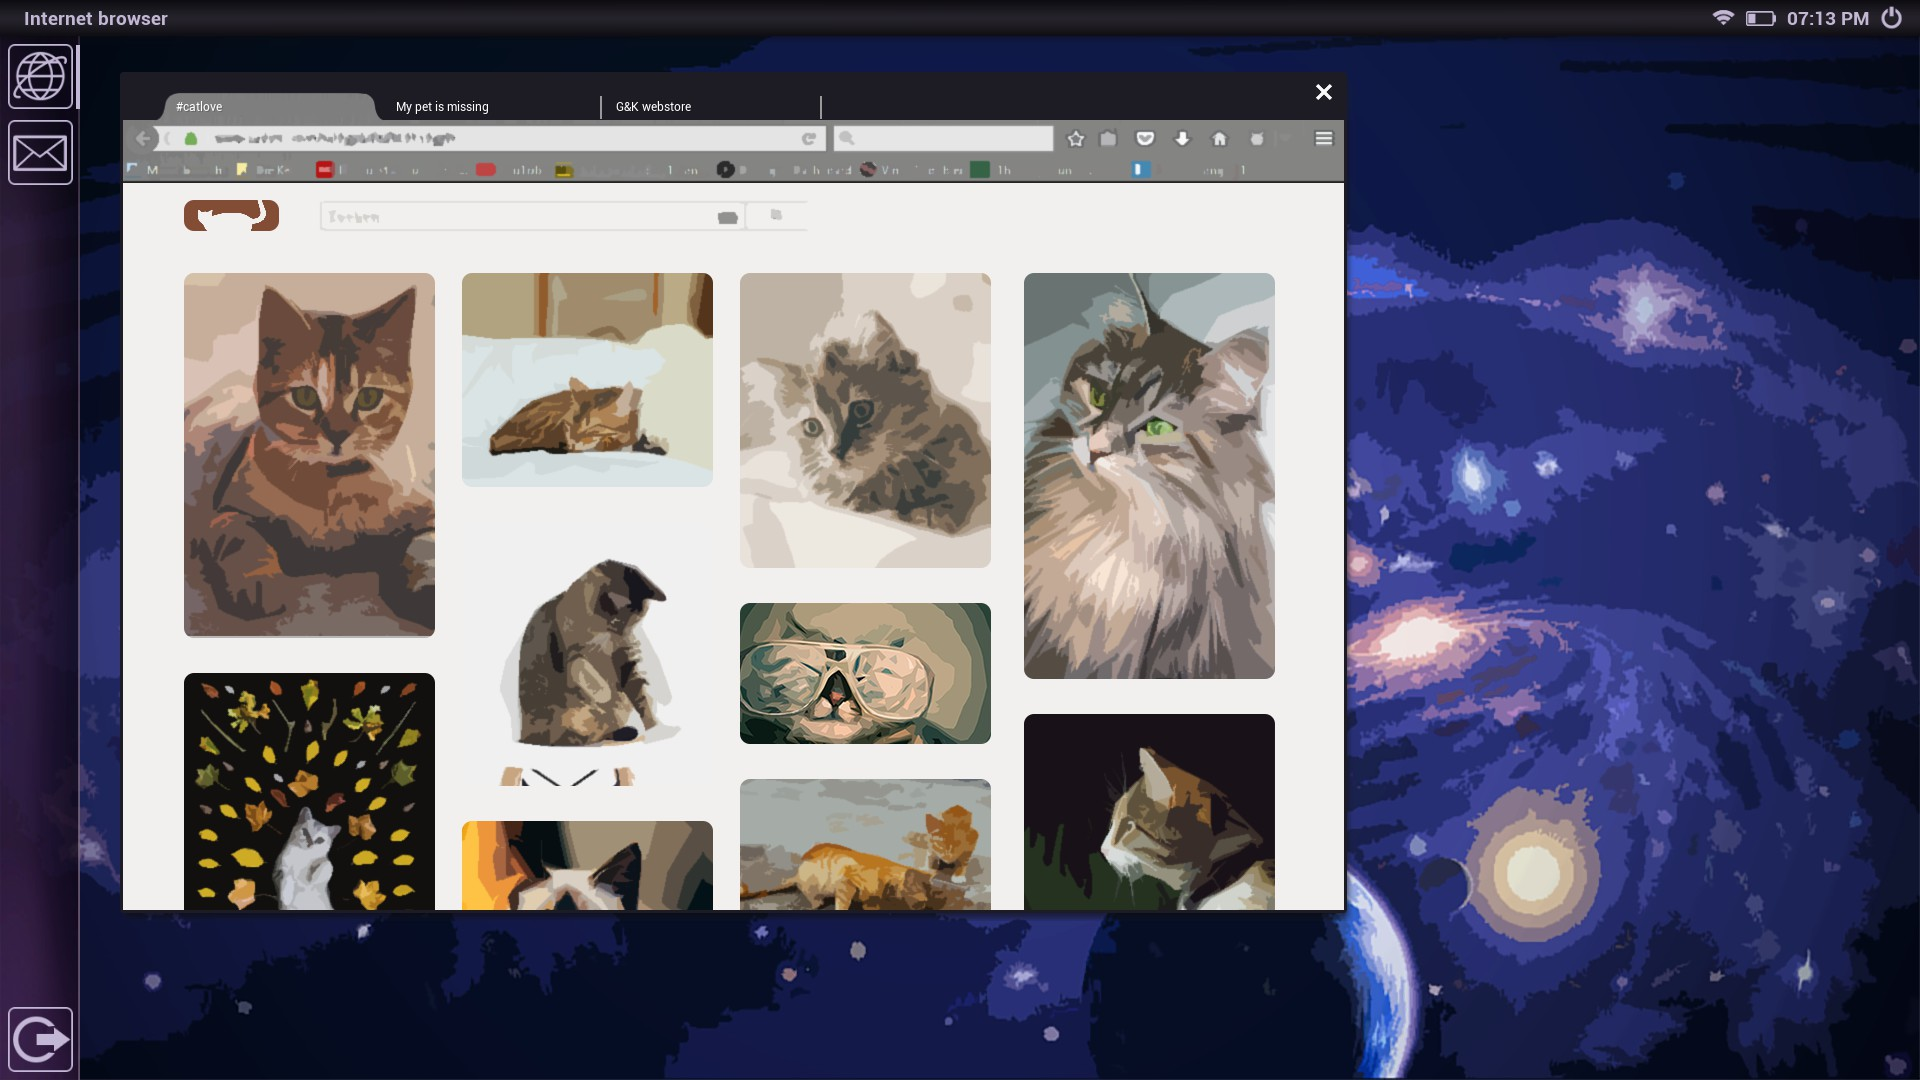 in-game laptop, desktop with galaxy background, browser window open with cat pics, 3/10 free steam games